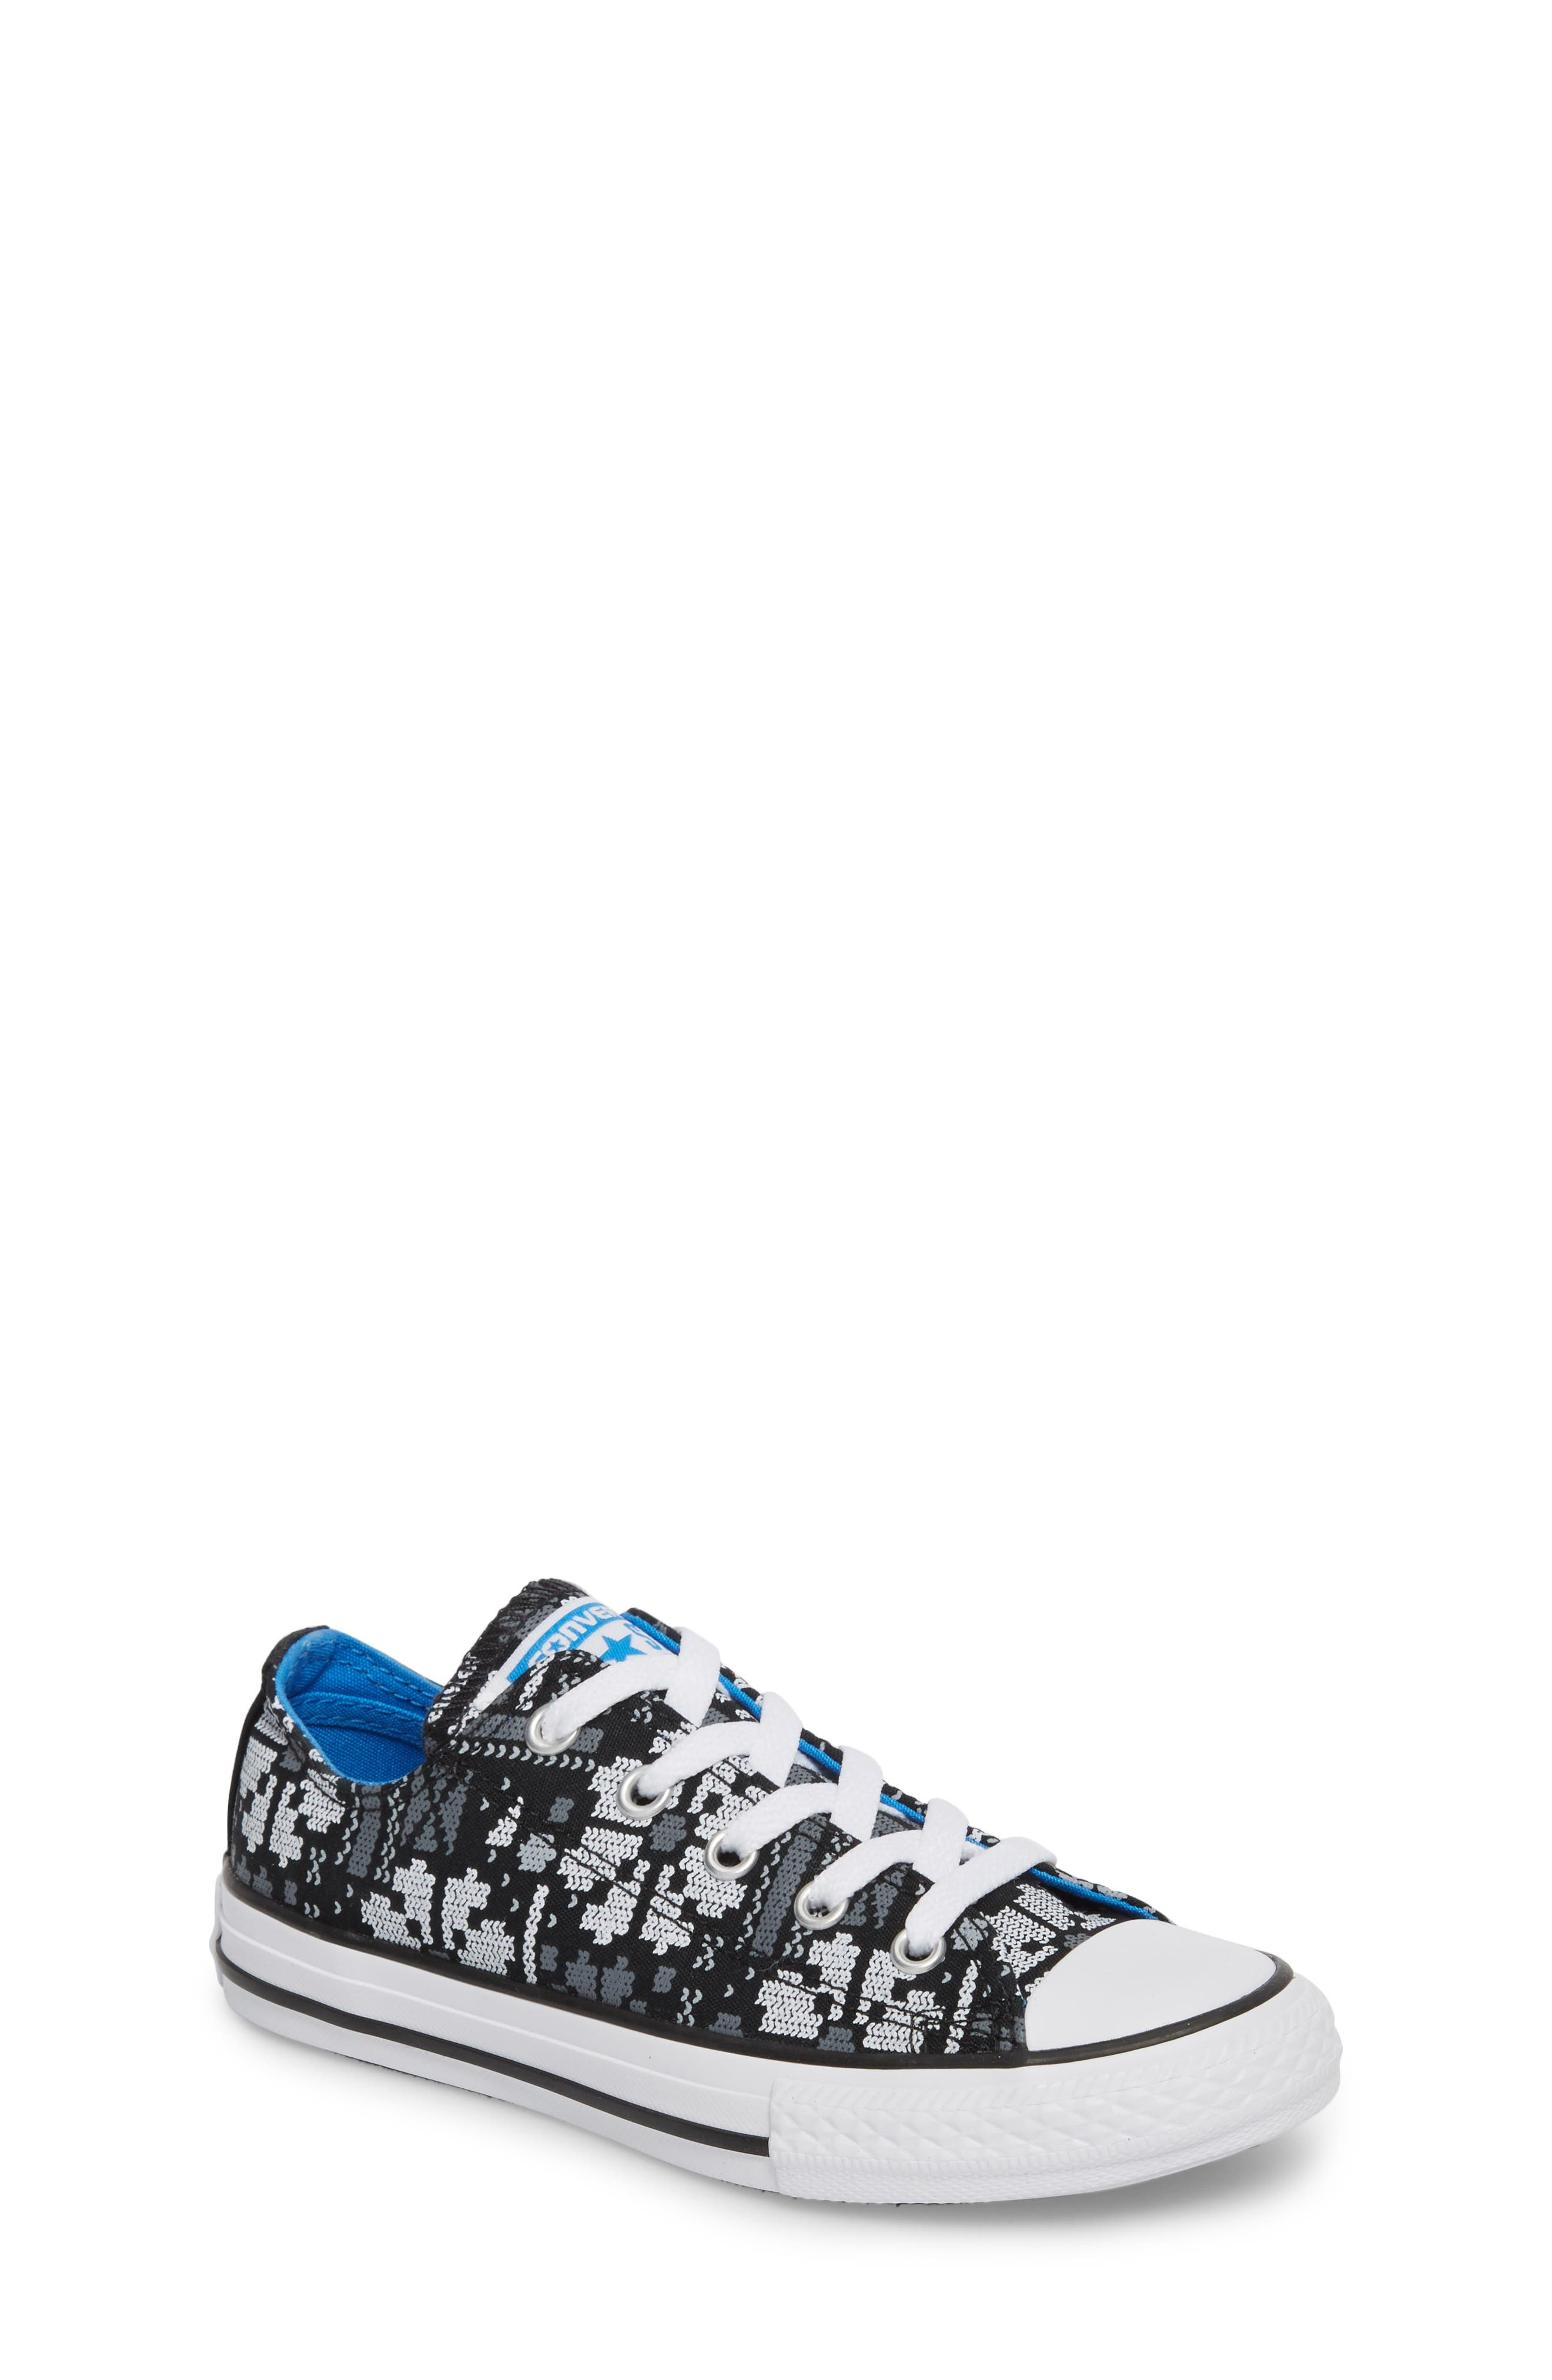 Chuck Taylor<sup>®</sup> All Star<sup>®</sup> Winter Ox Sneaker,                             Main thumbnail 1, color,